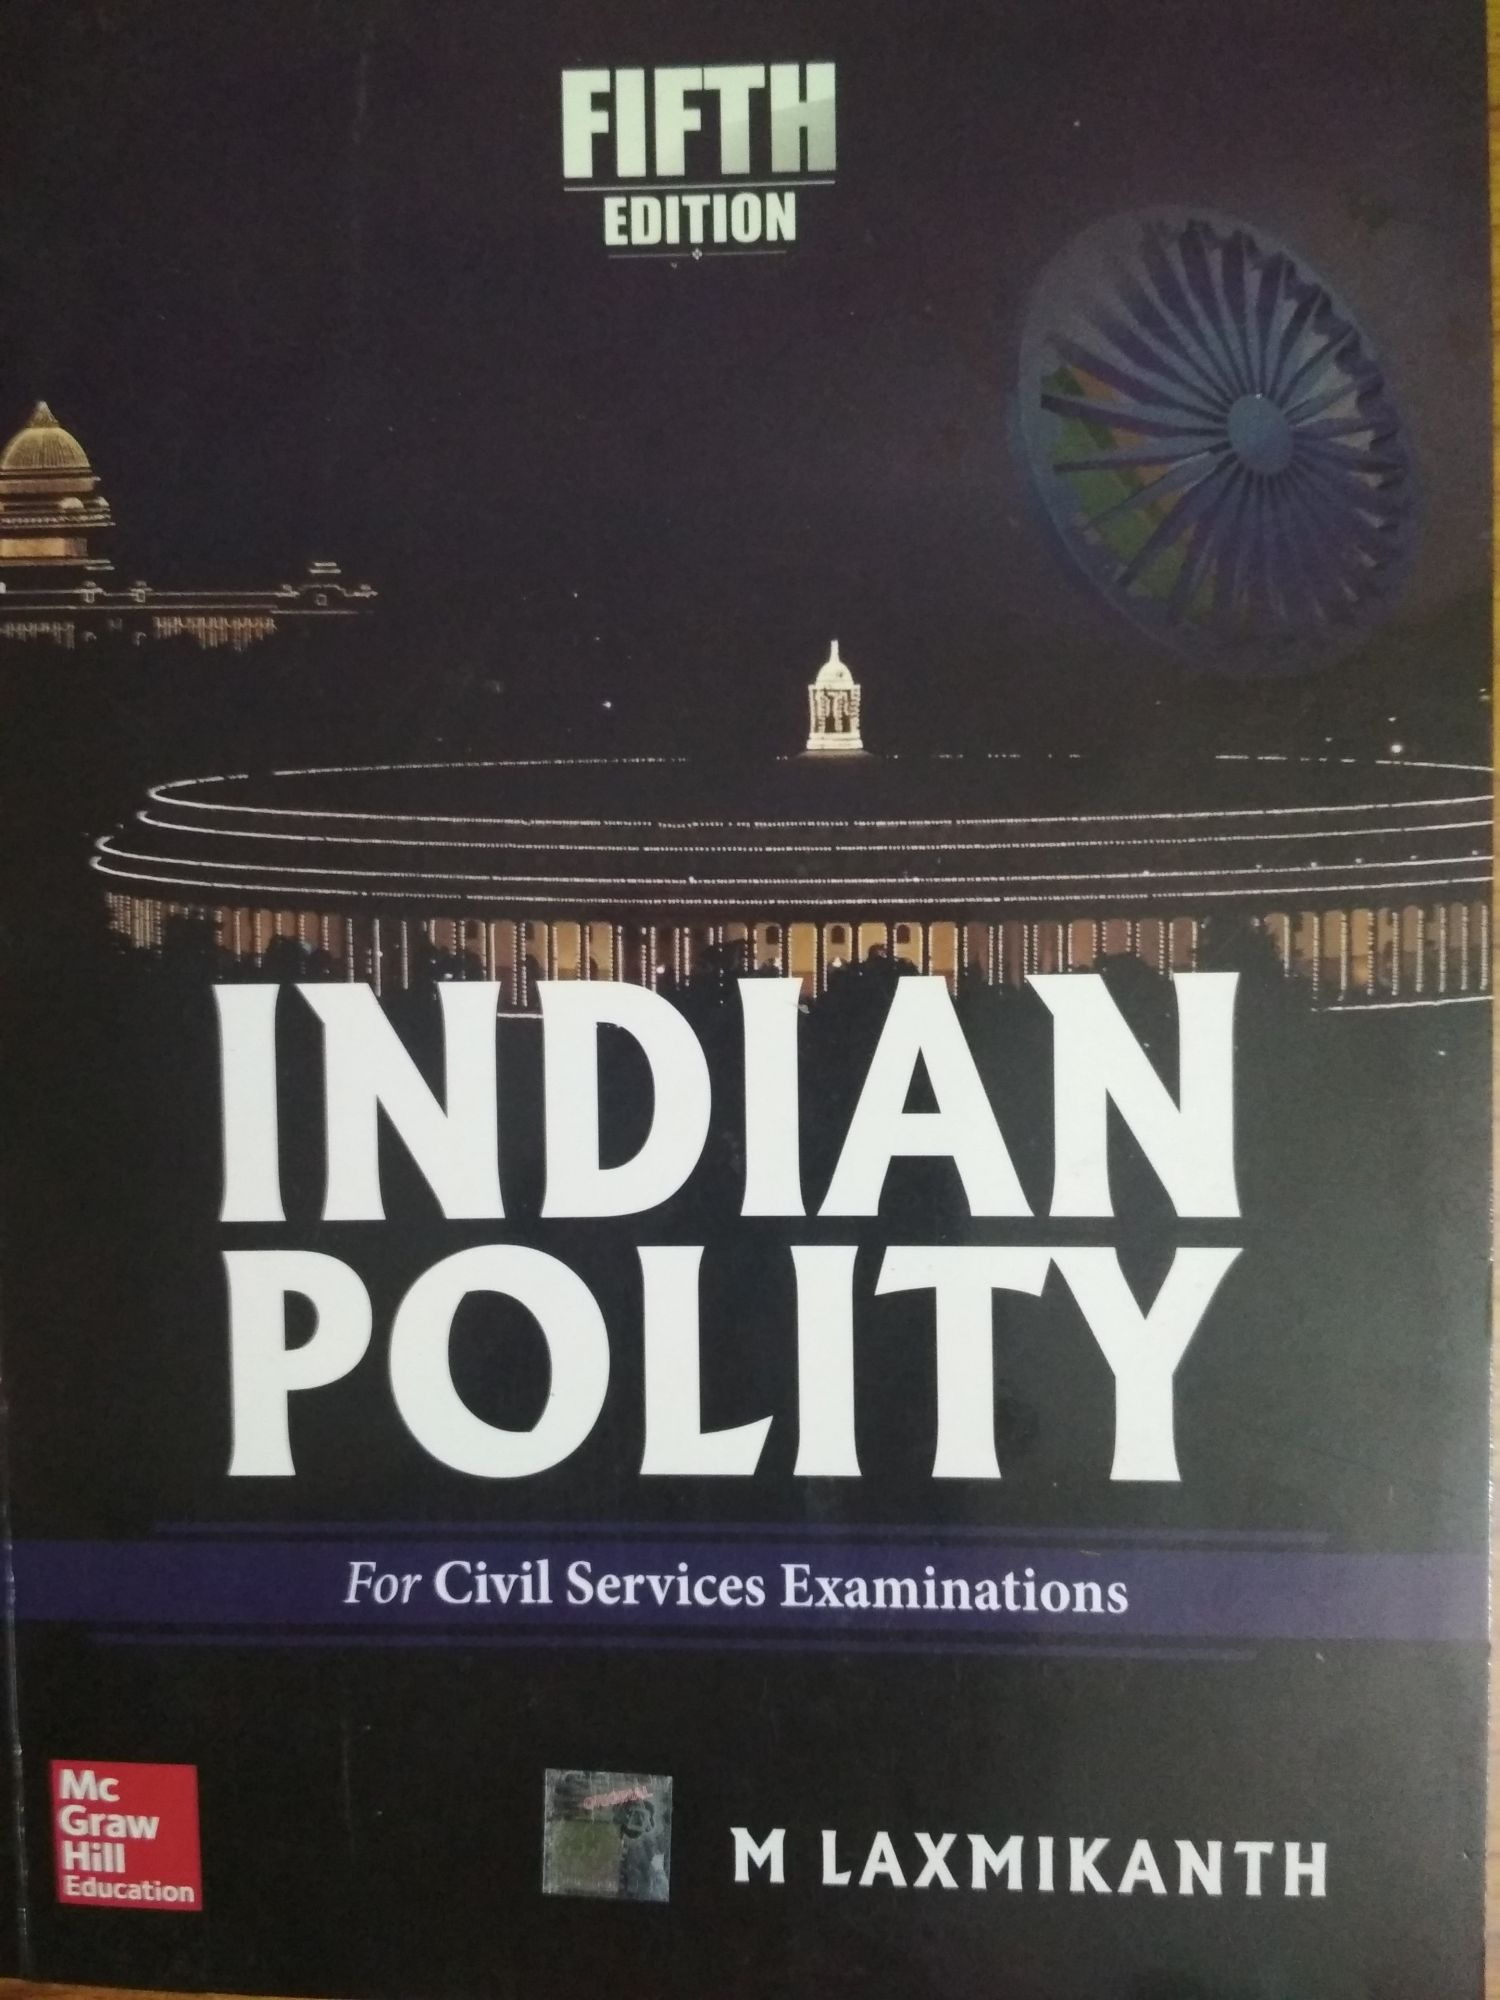 M Laxmikanth Indian Polity Fifth Edition